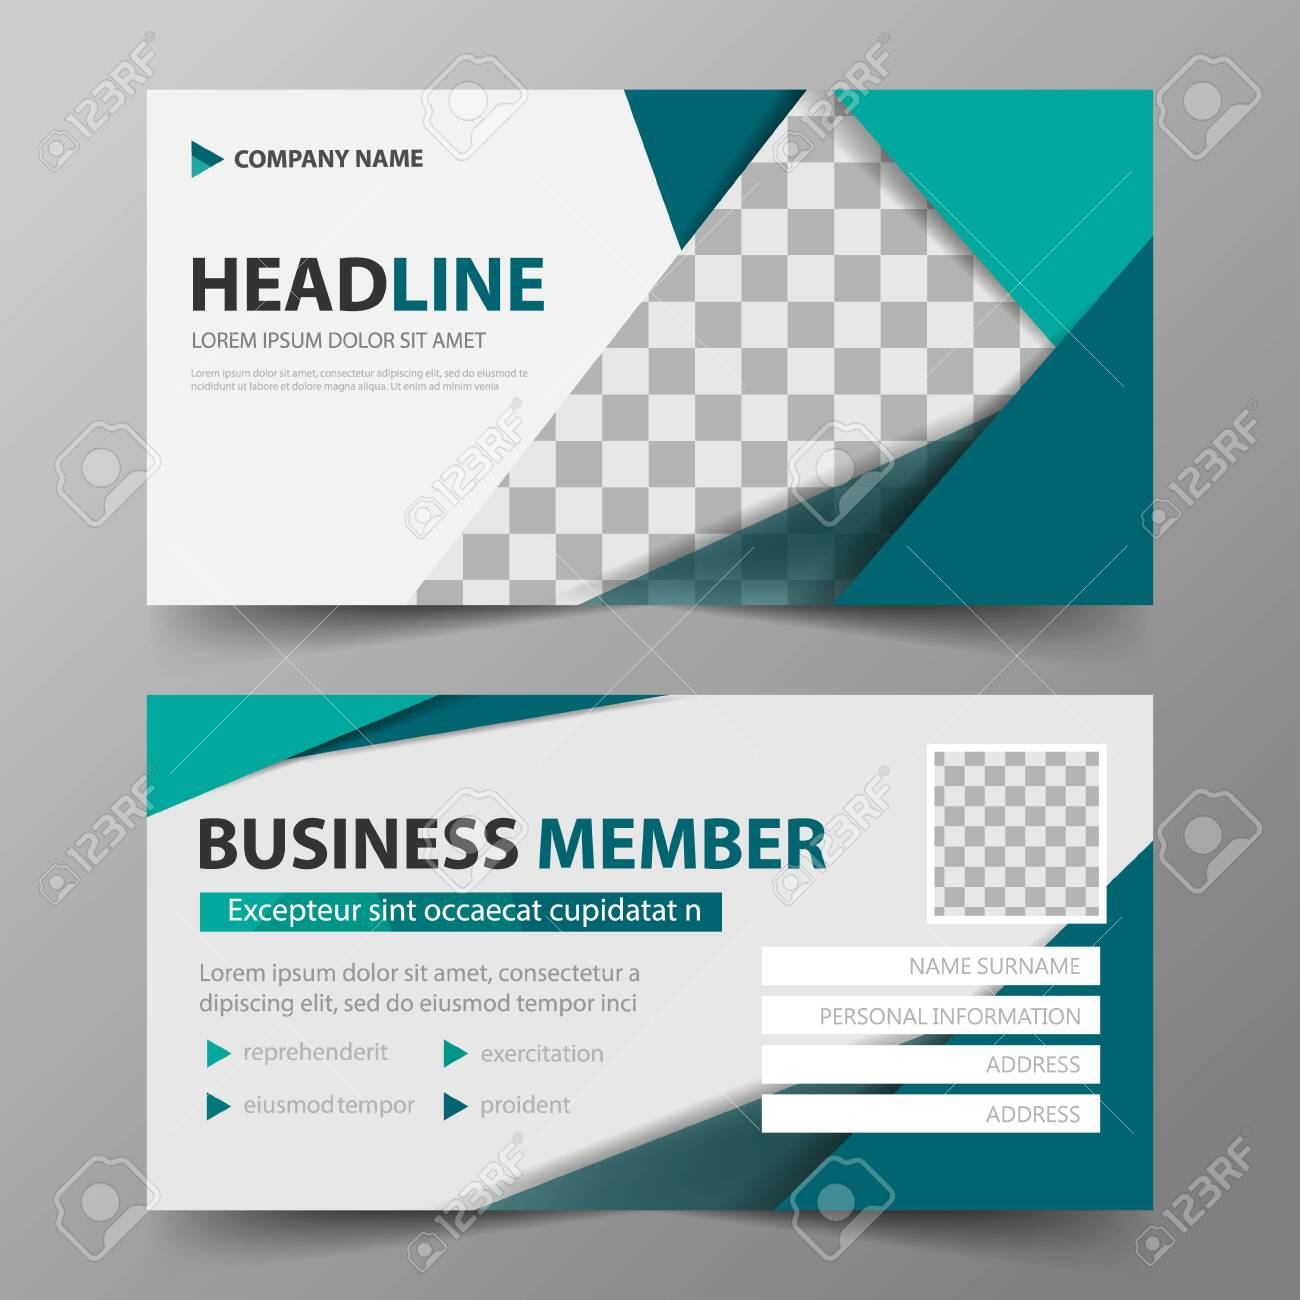 Member Card Corporate Business Card, Name Card Template Within Template For Membership Cards